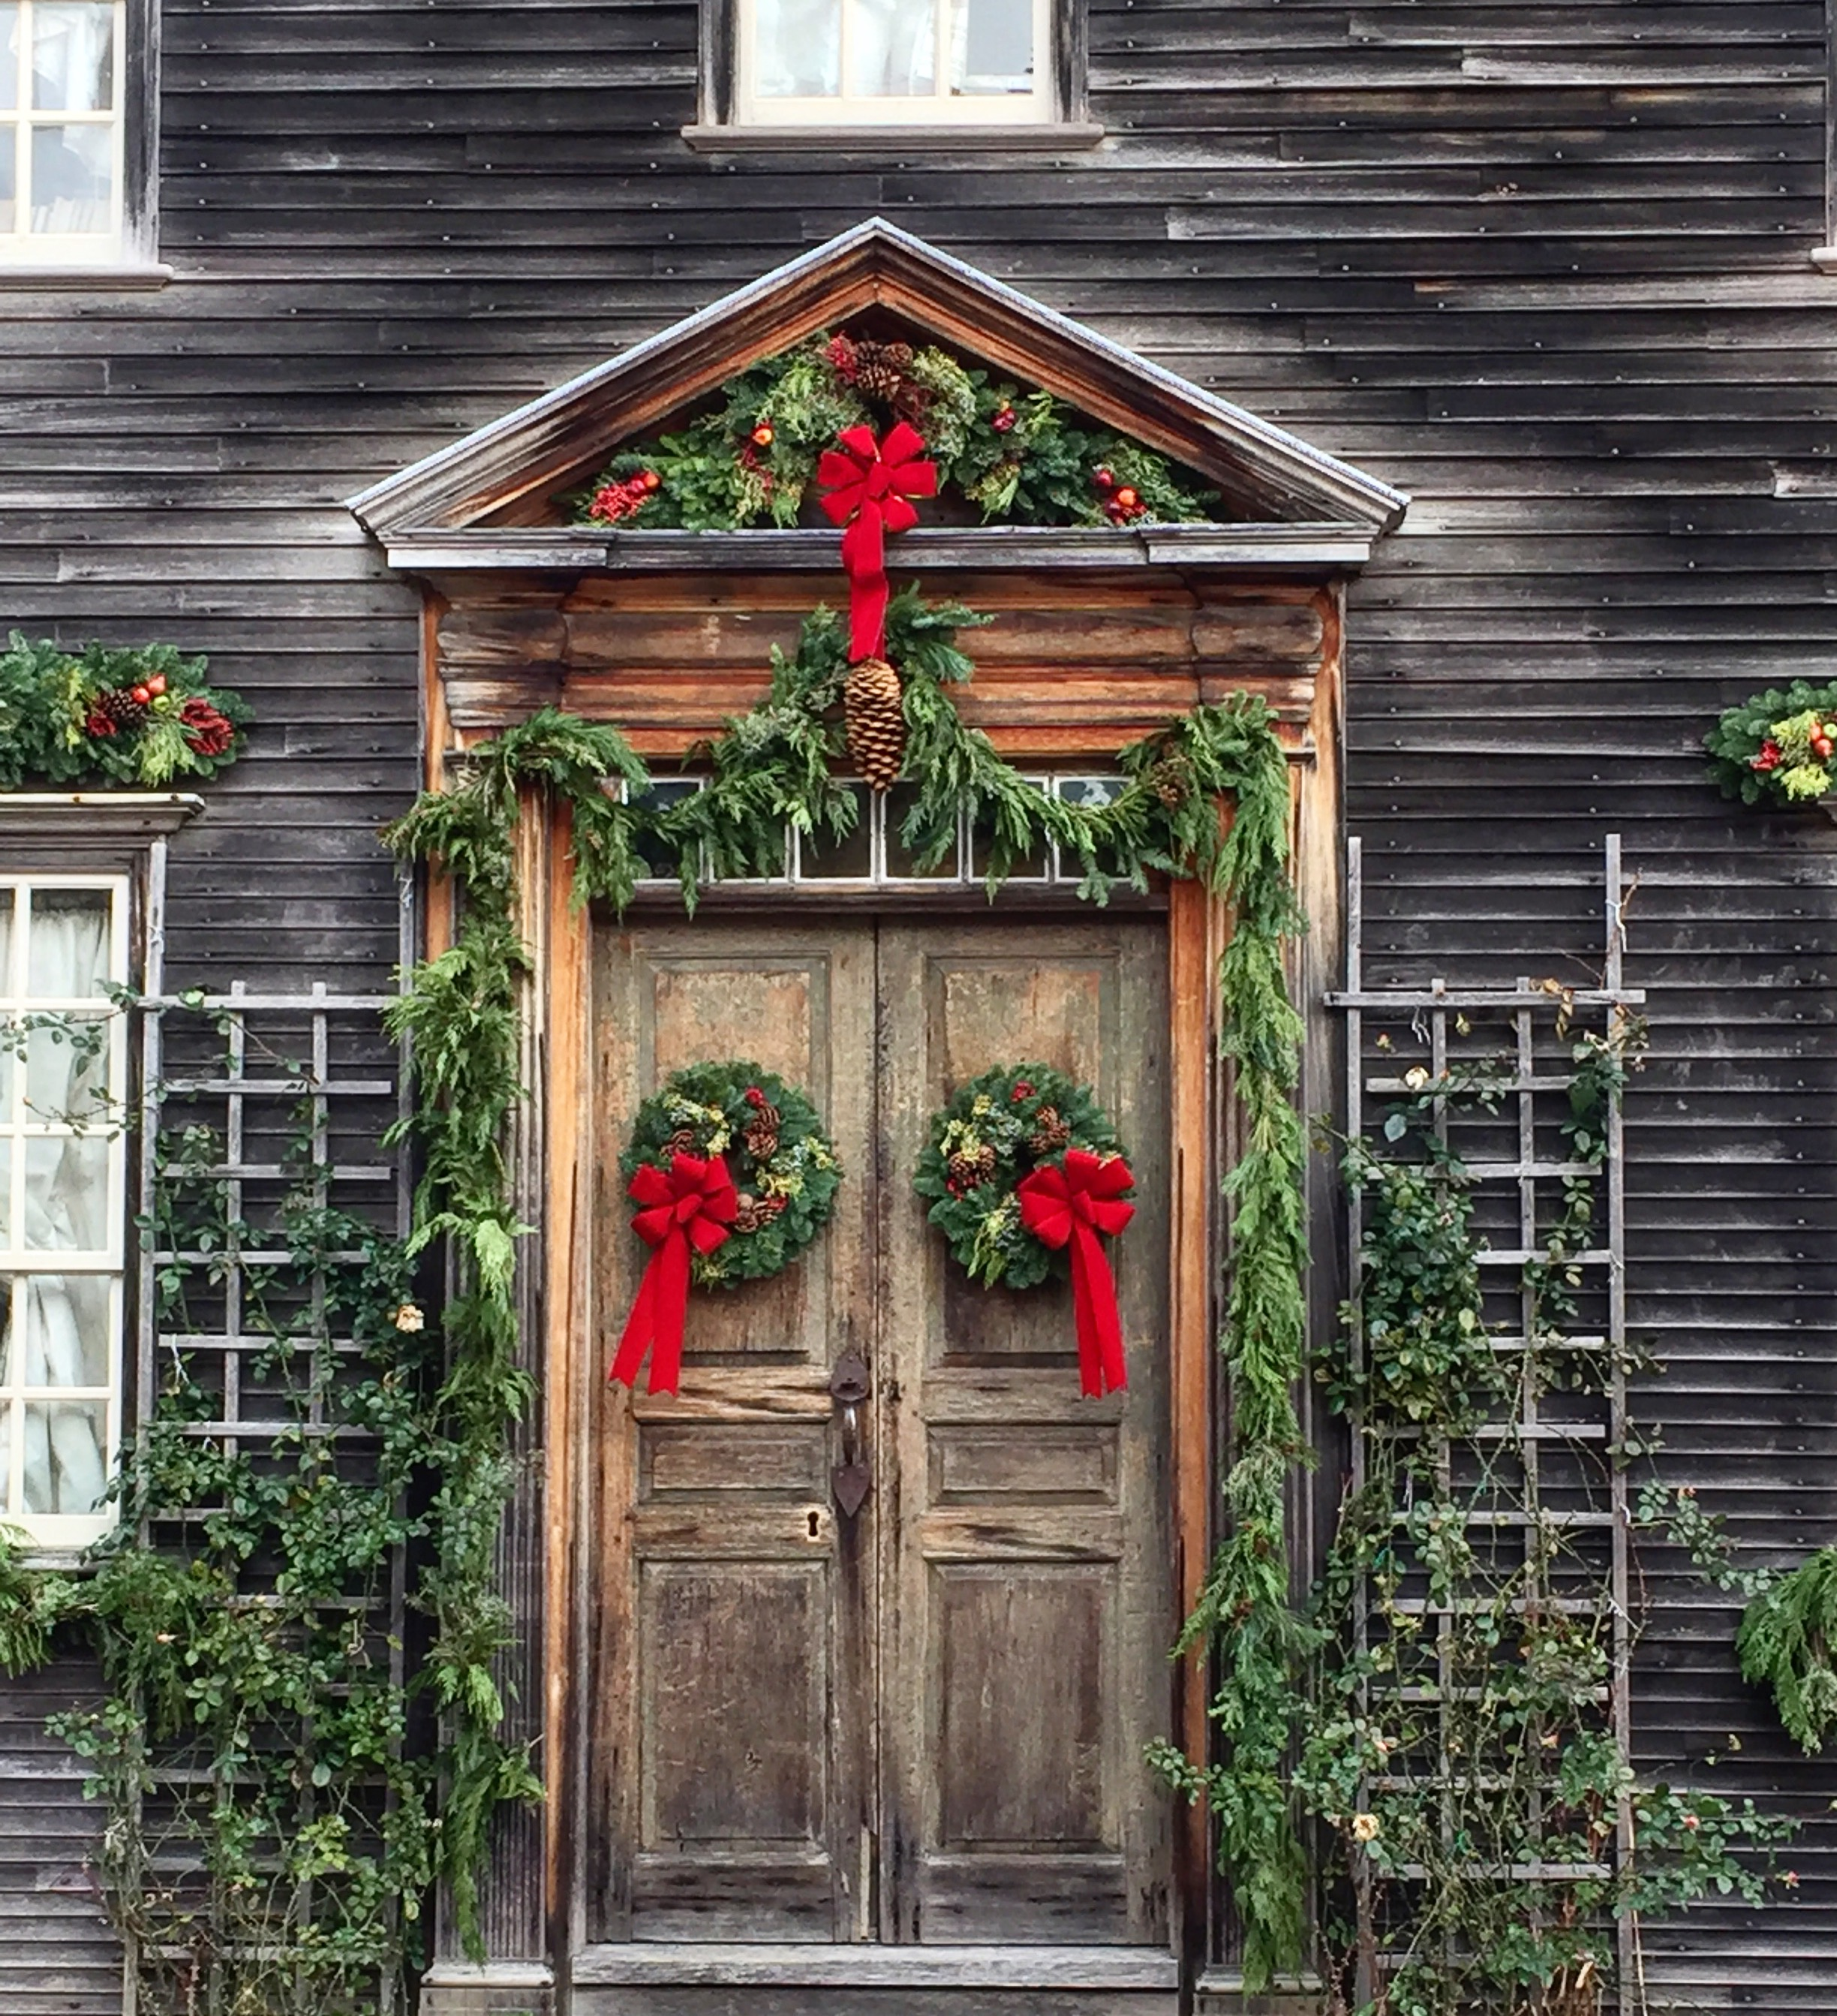 Christmas Wreath ideas from New England - portsmouth nh 14.jpg